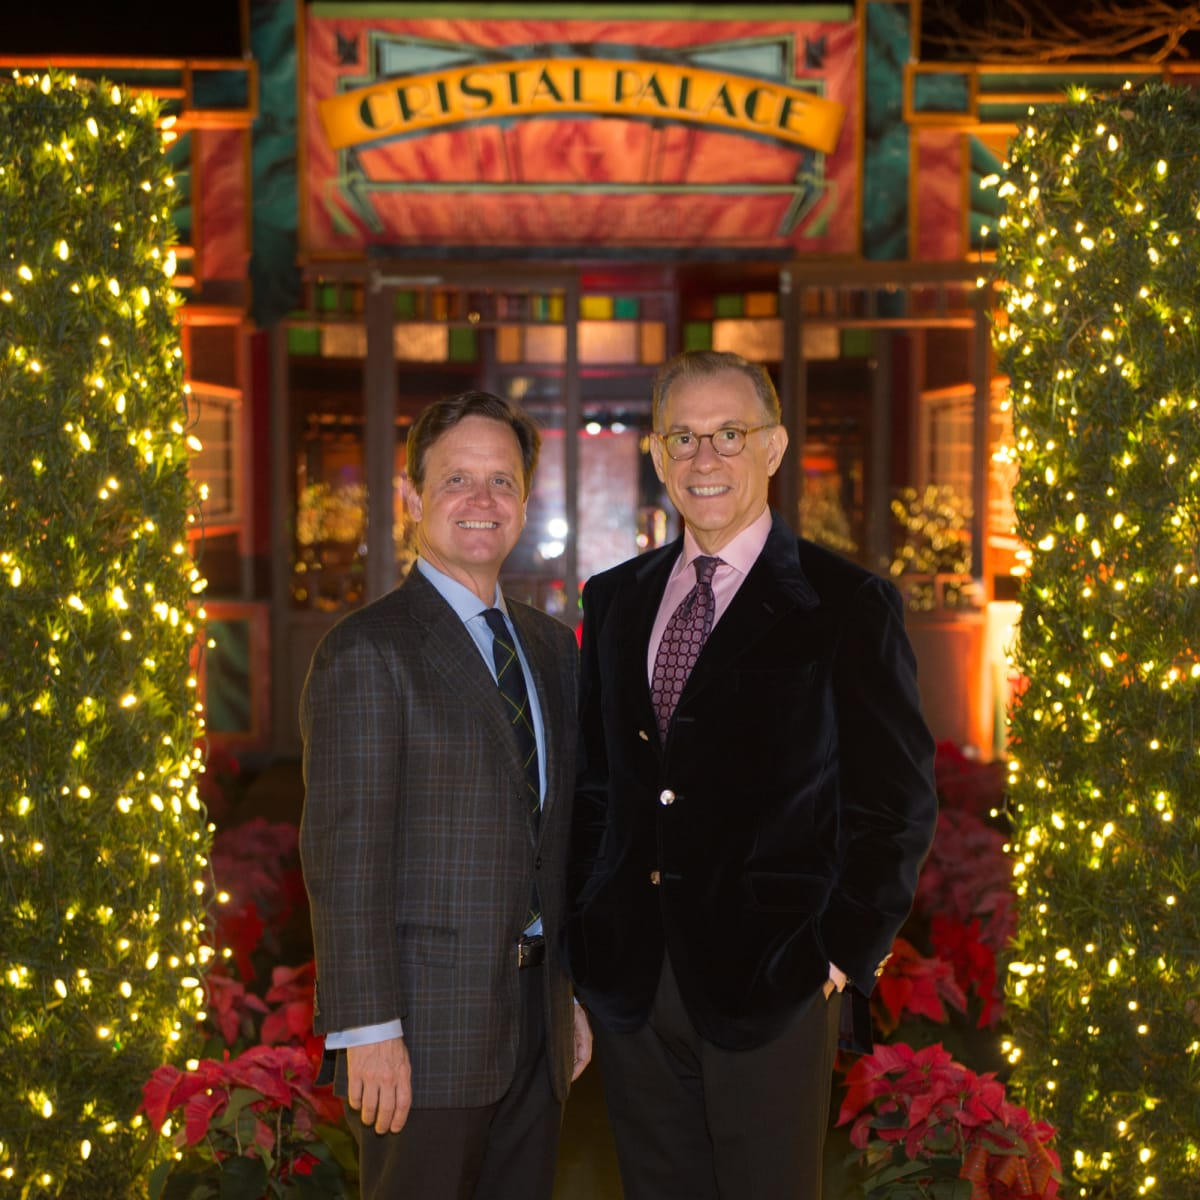 News, Bayou Bend Spiegeltent, Dec. 2015, Gary Tinterow, Christopher Gardner